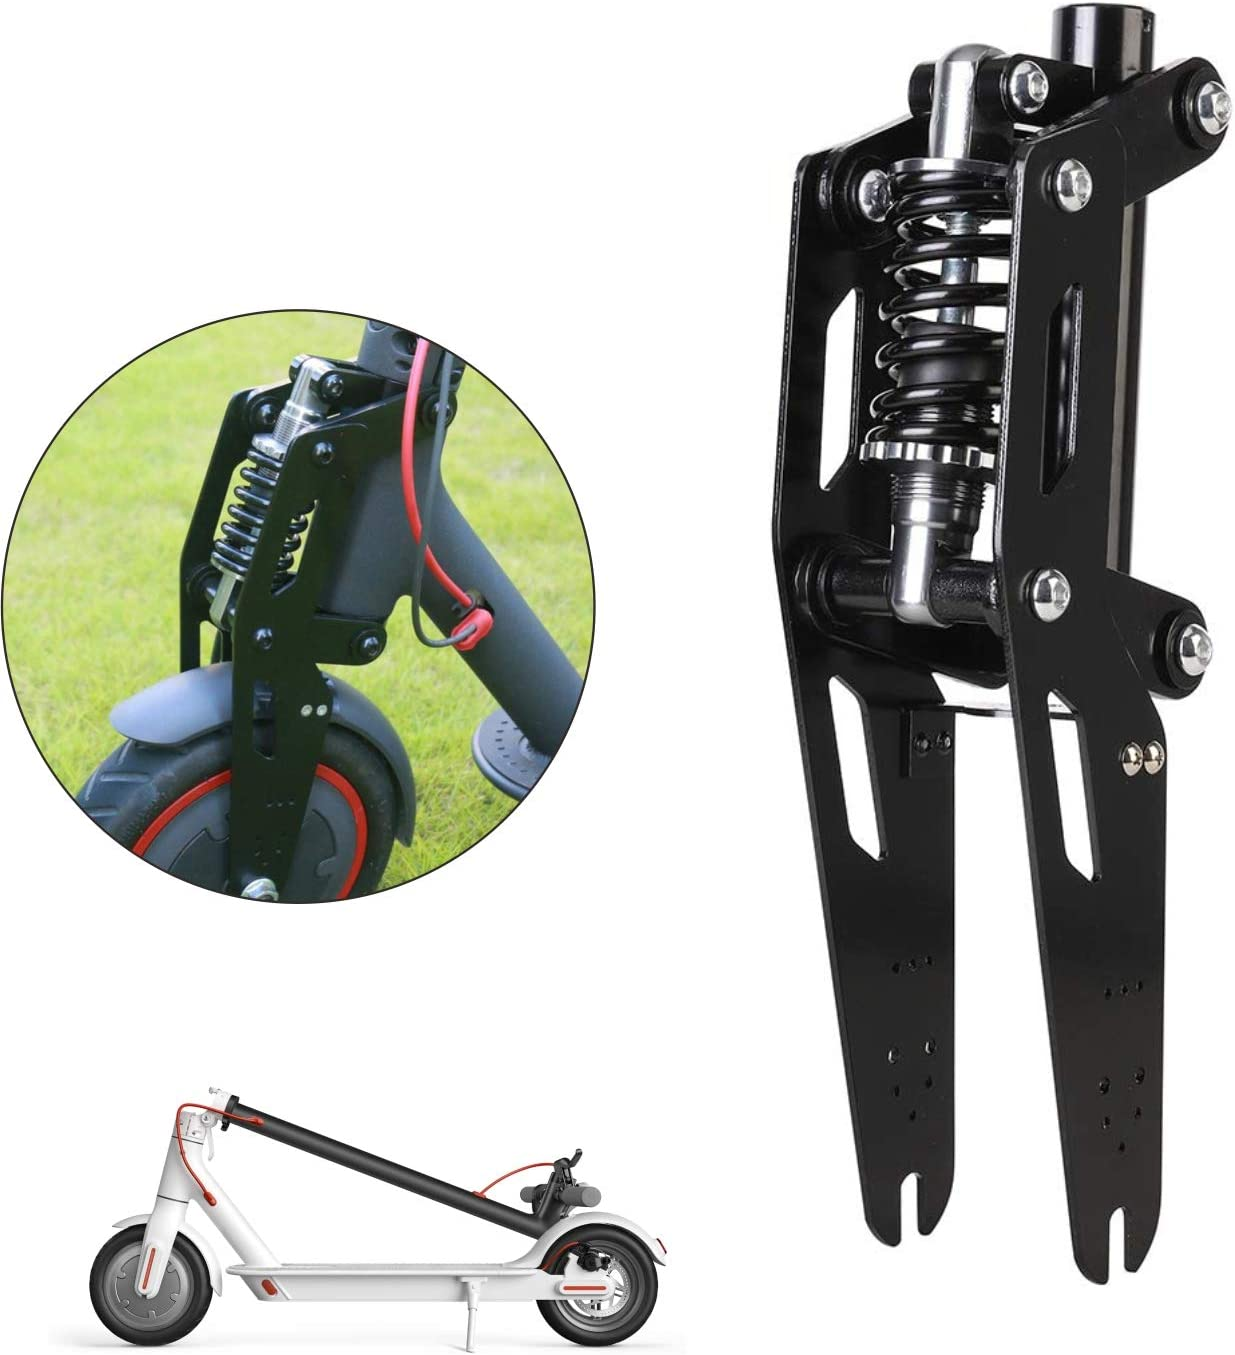 WELLSTRONG New Modified Shock Absorber Front Fork for Xiaomi Mijia M365 Bird MI and M365 Pro Vibration Damper Accessories